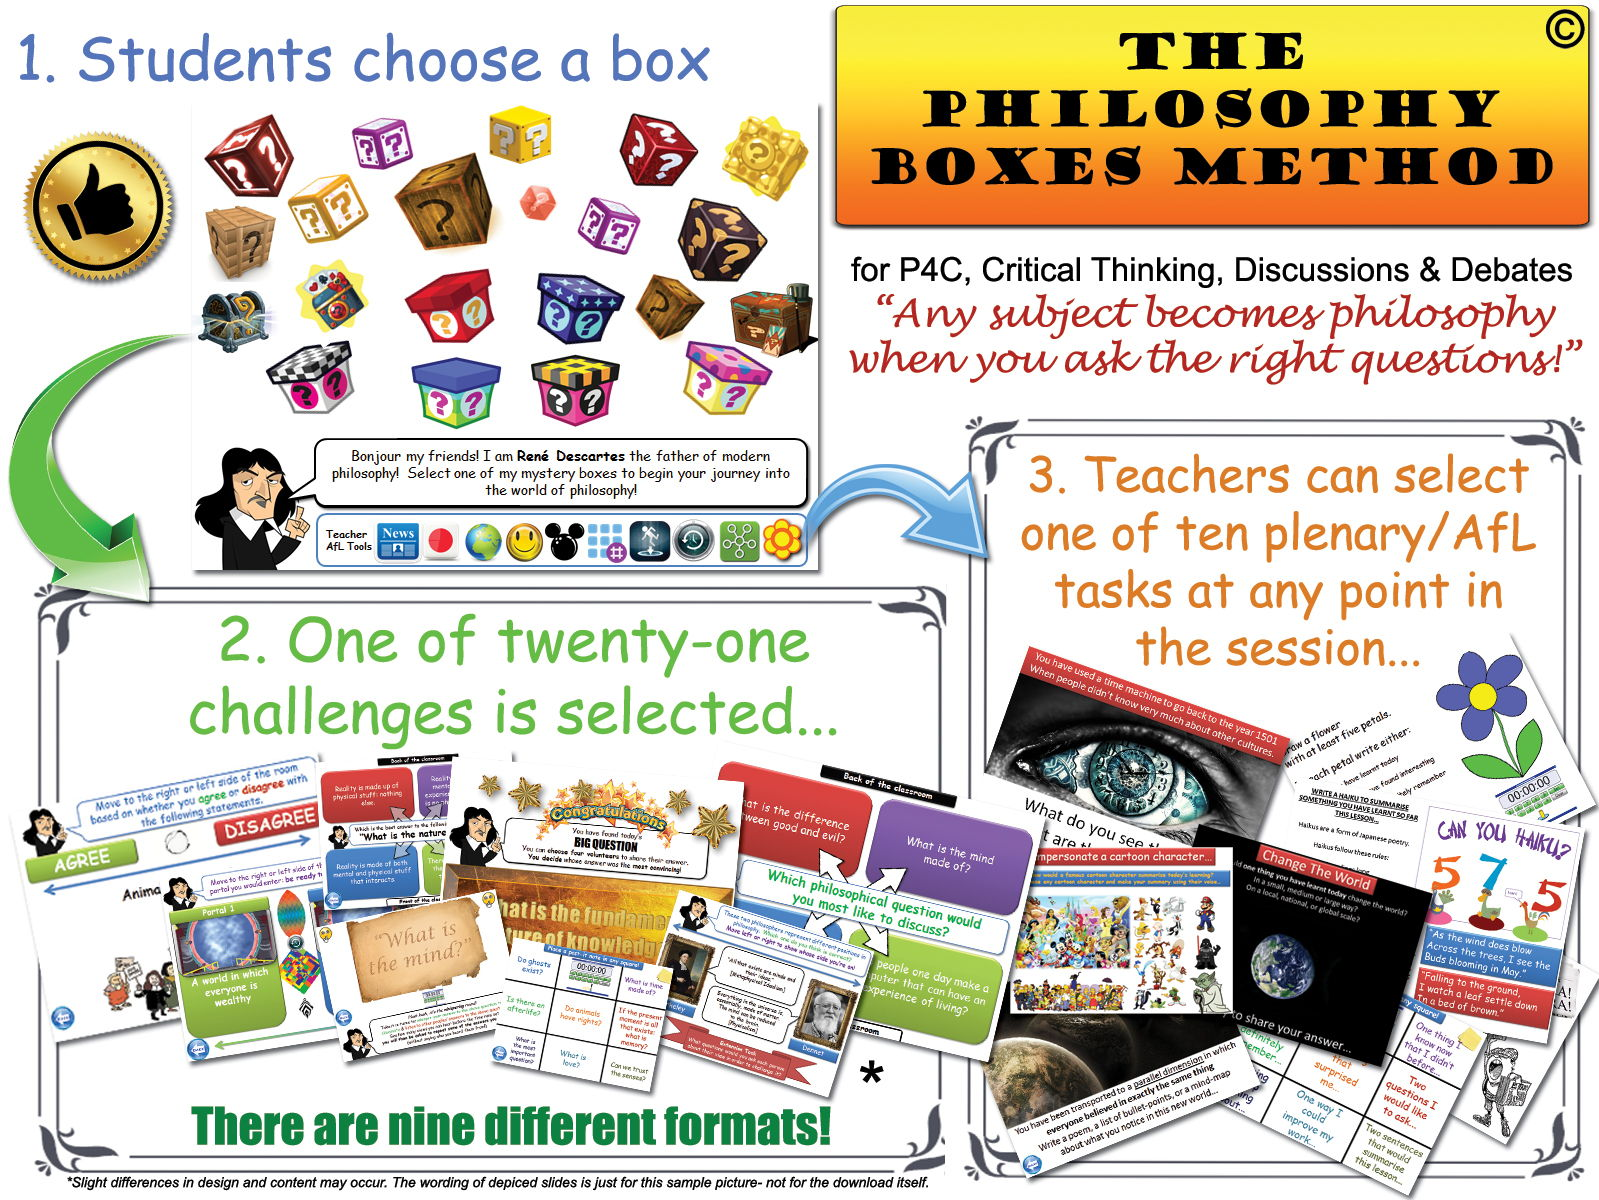 KS1 & KS2 PSHE [Philosophy Boxes] Bundle! RELATIONSHIPS: E-Safety, Cyber-bullying, Bullying, Friendship, Family, Conflict Mediation, Similarities and Differences, Community & Citizenship